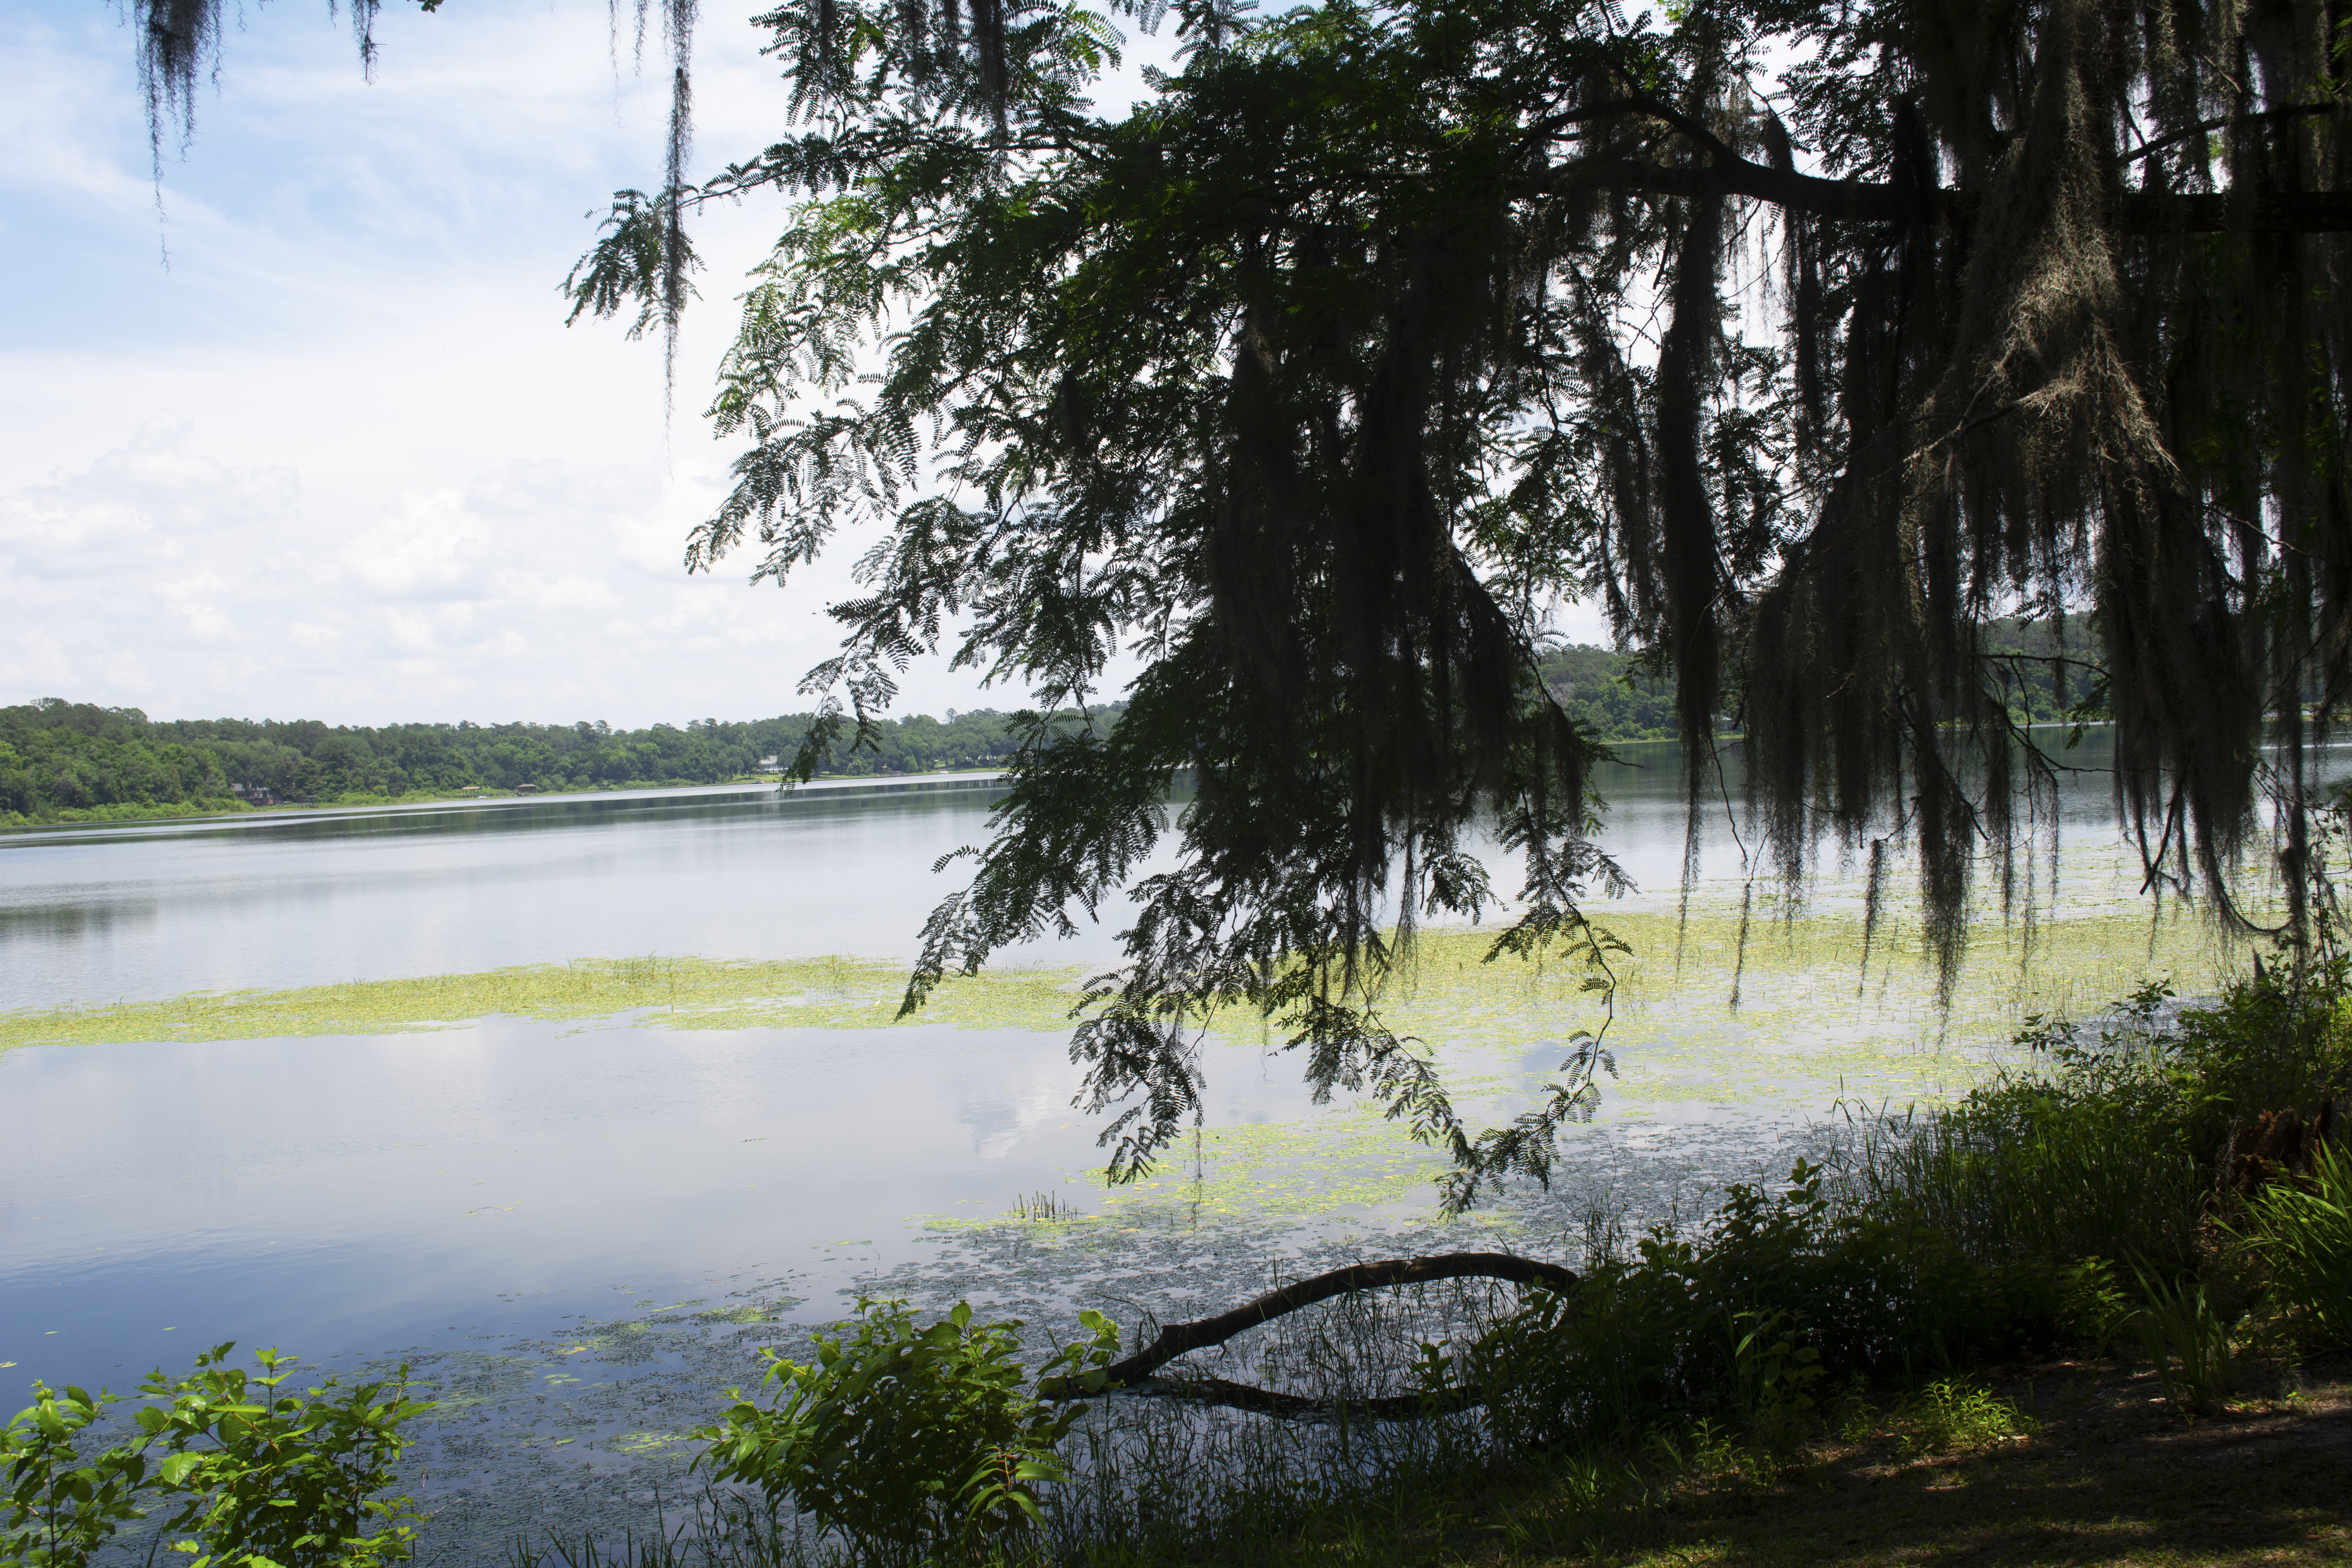 Tree branches hang with lake behind at Alfred B. McCabe Garden State Park in Tallahassee, FL